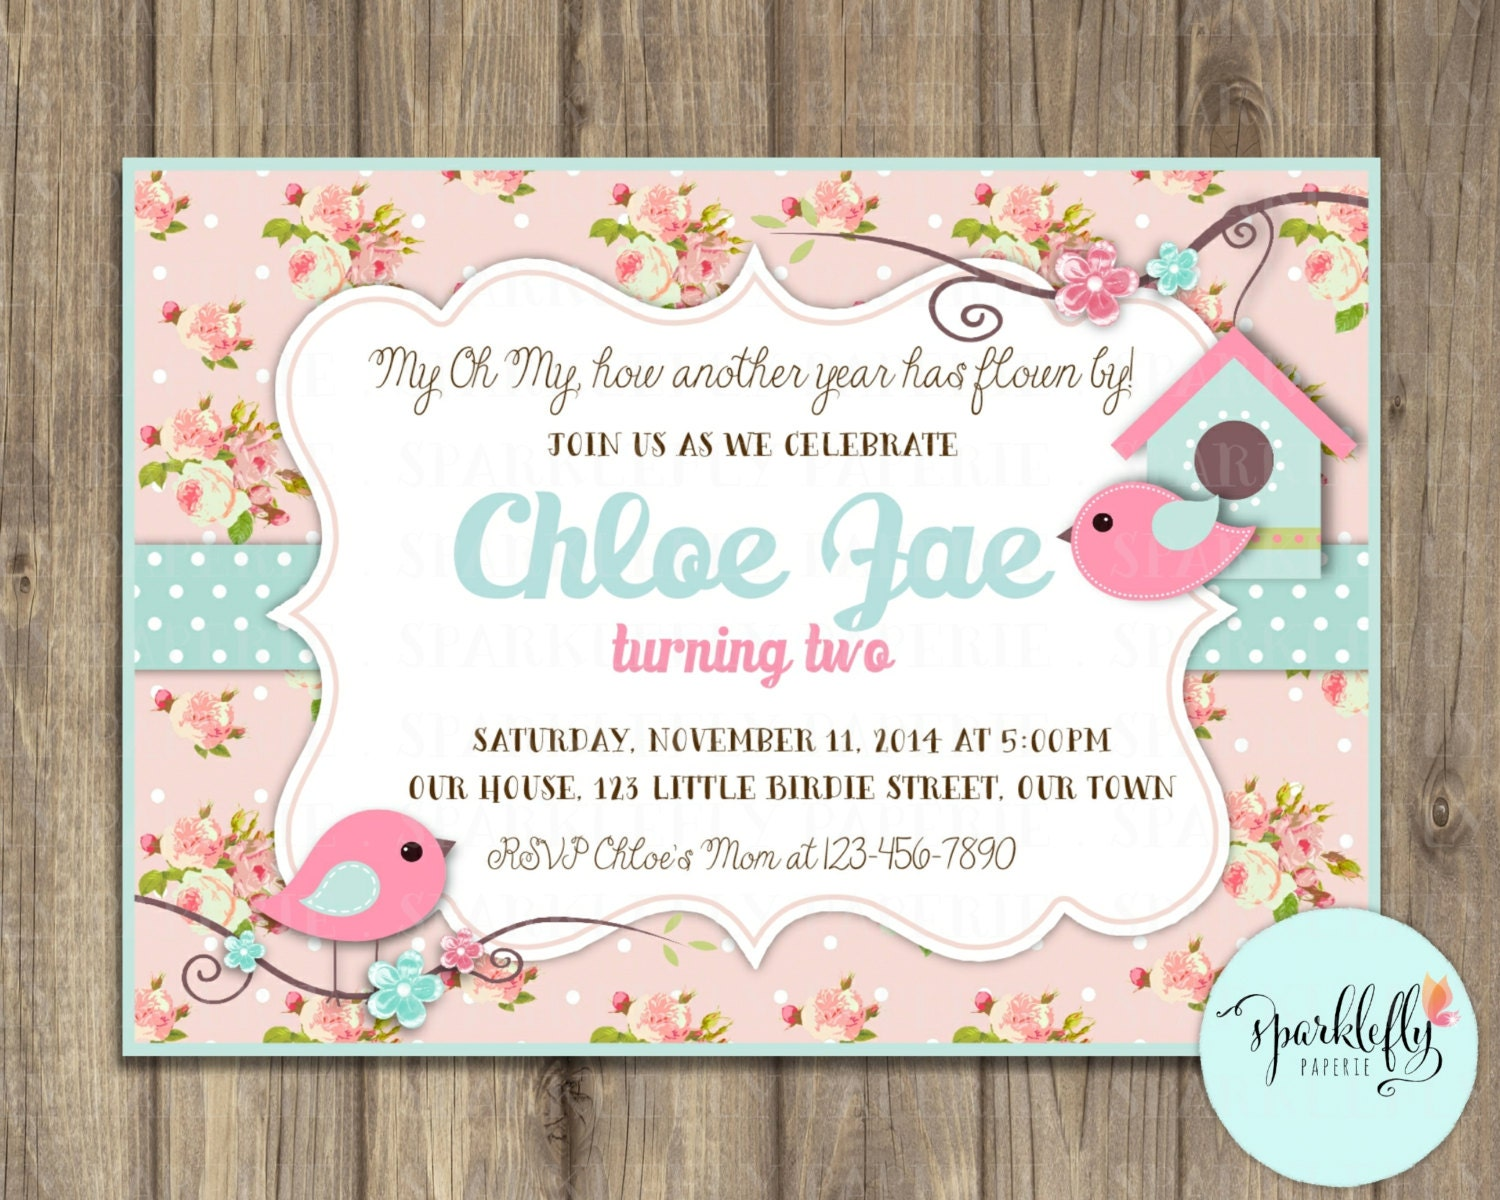 Thanksgiving Invitations Wording Ideas was awesome invitations layout